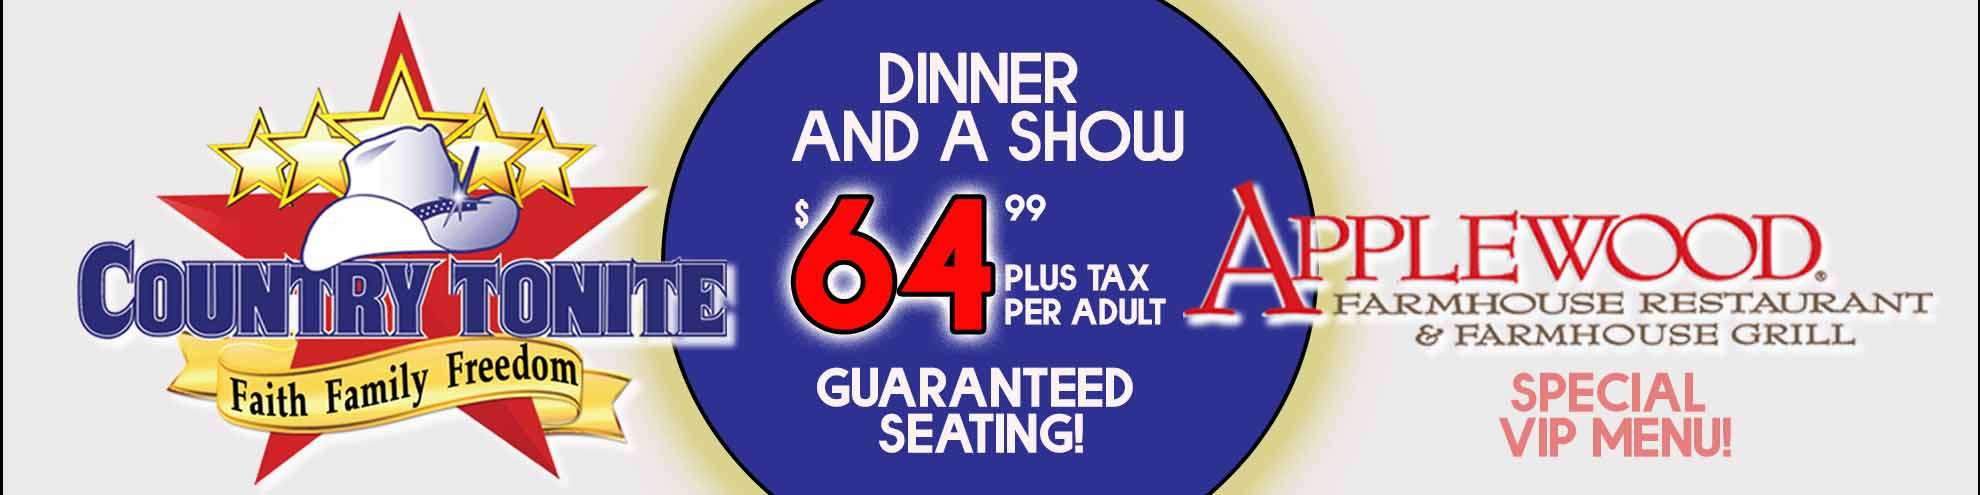 Country Tonite and Applewood Farmhouse Restaurant Reserved Seating Discounts